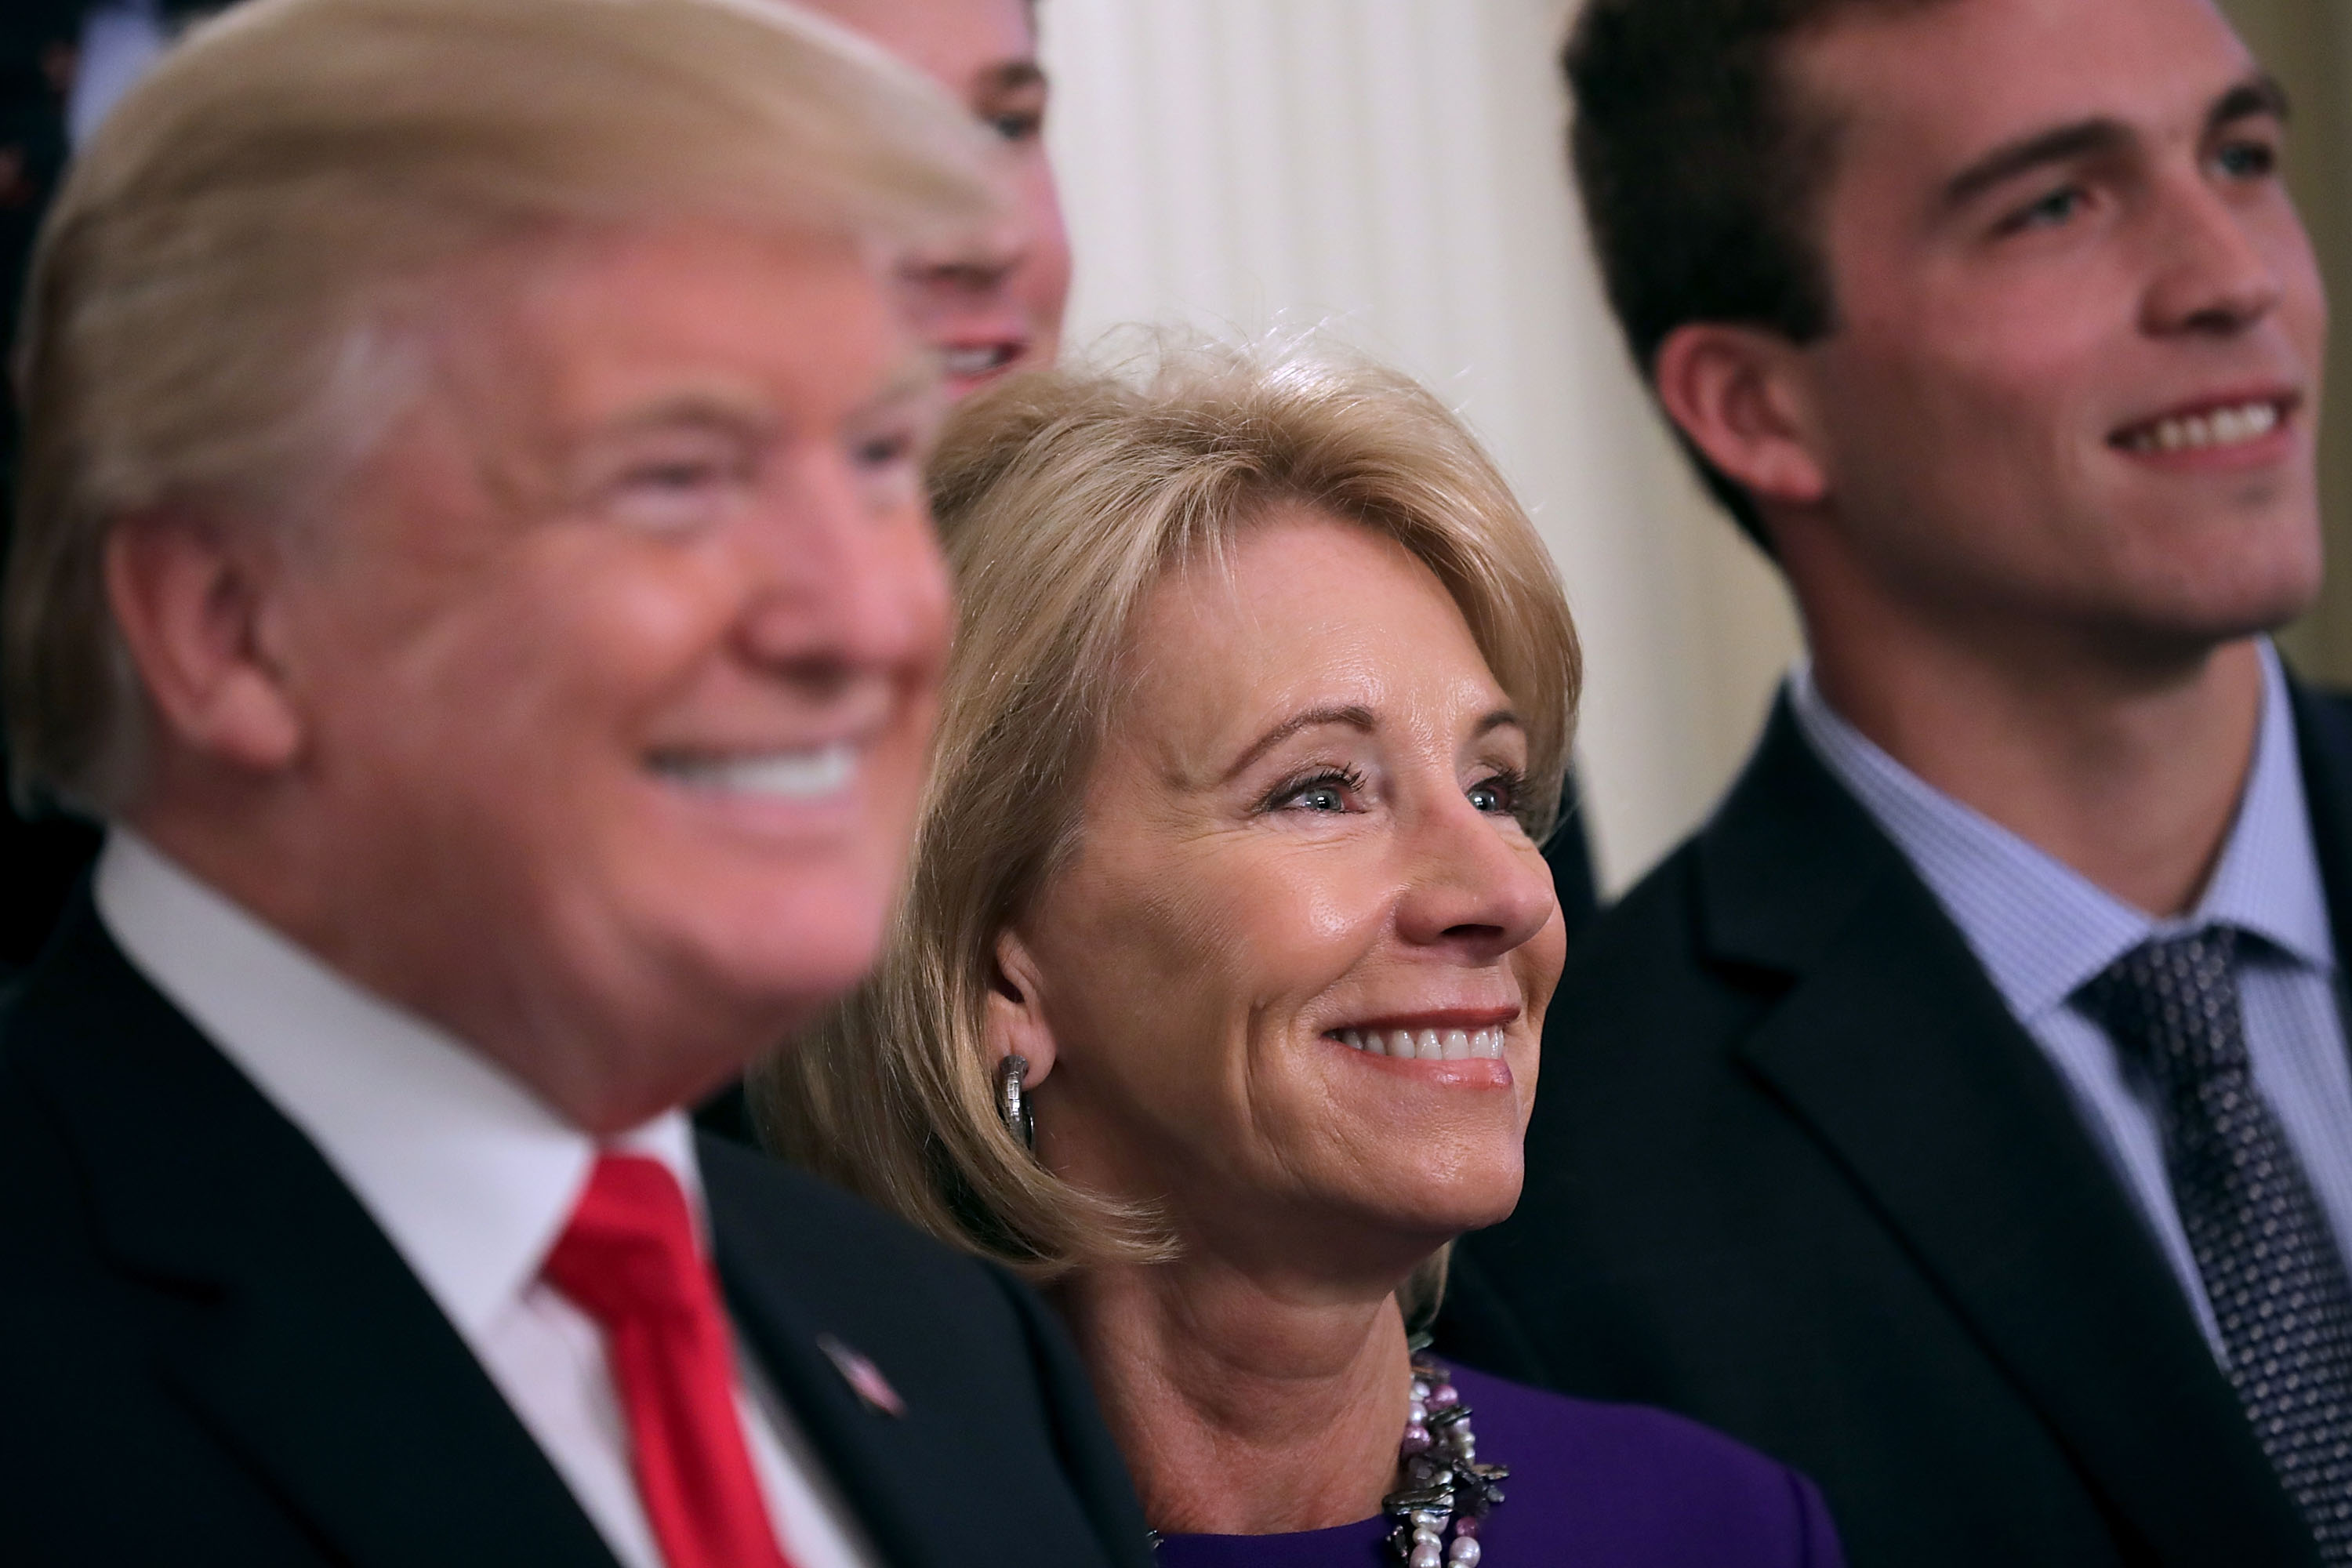 Higher Education Act: Trump's vision for student loans